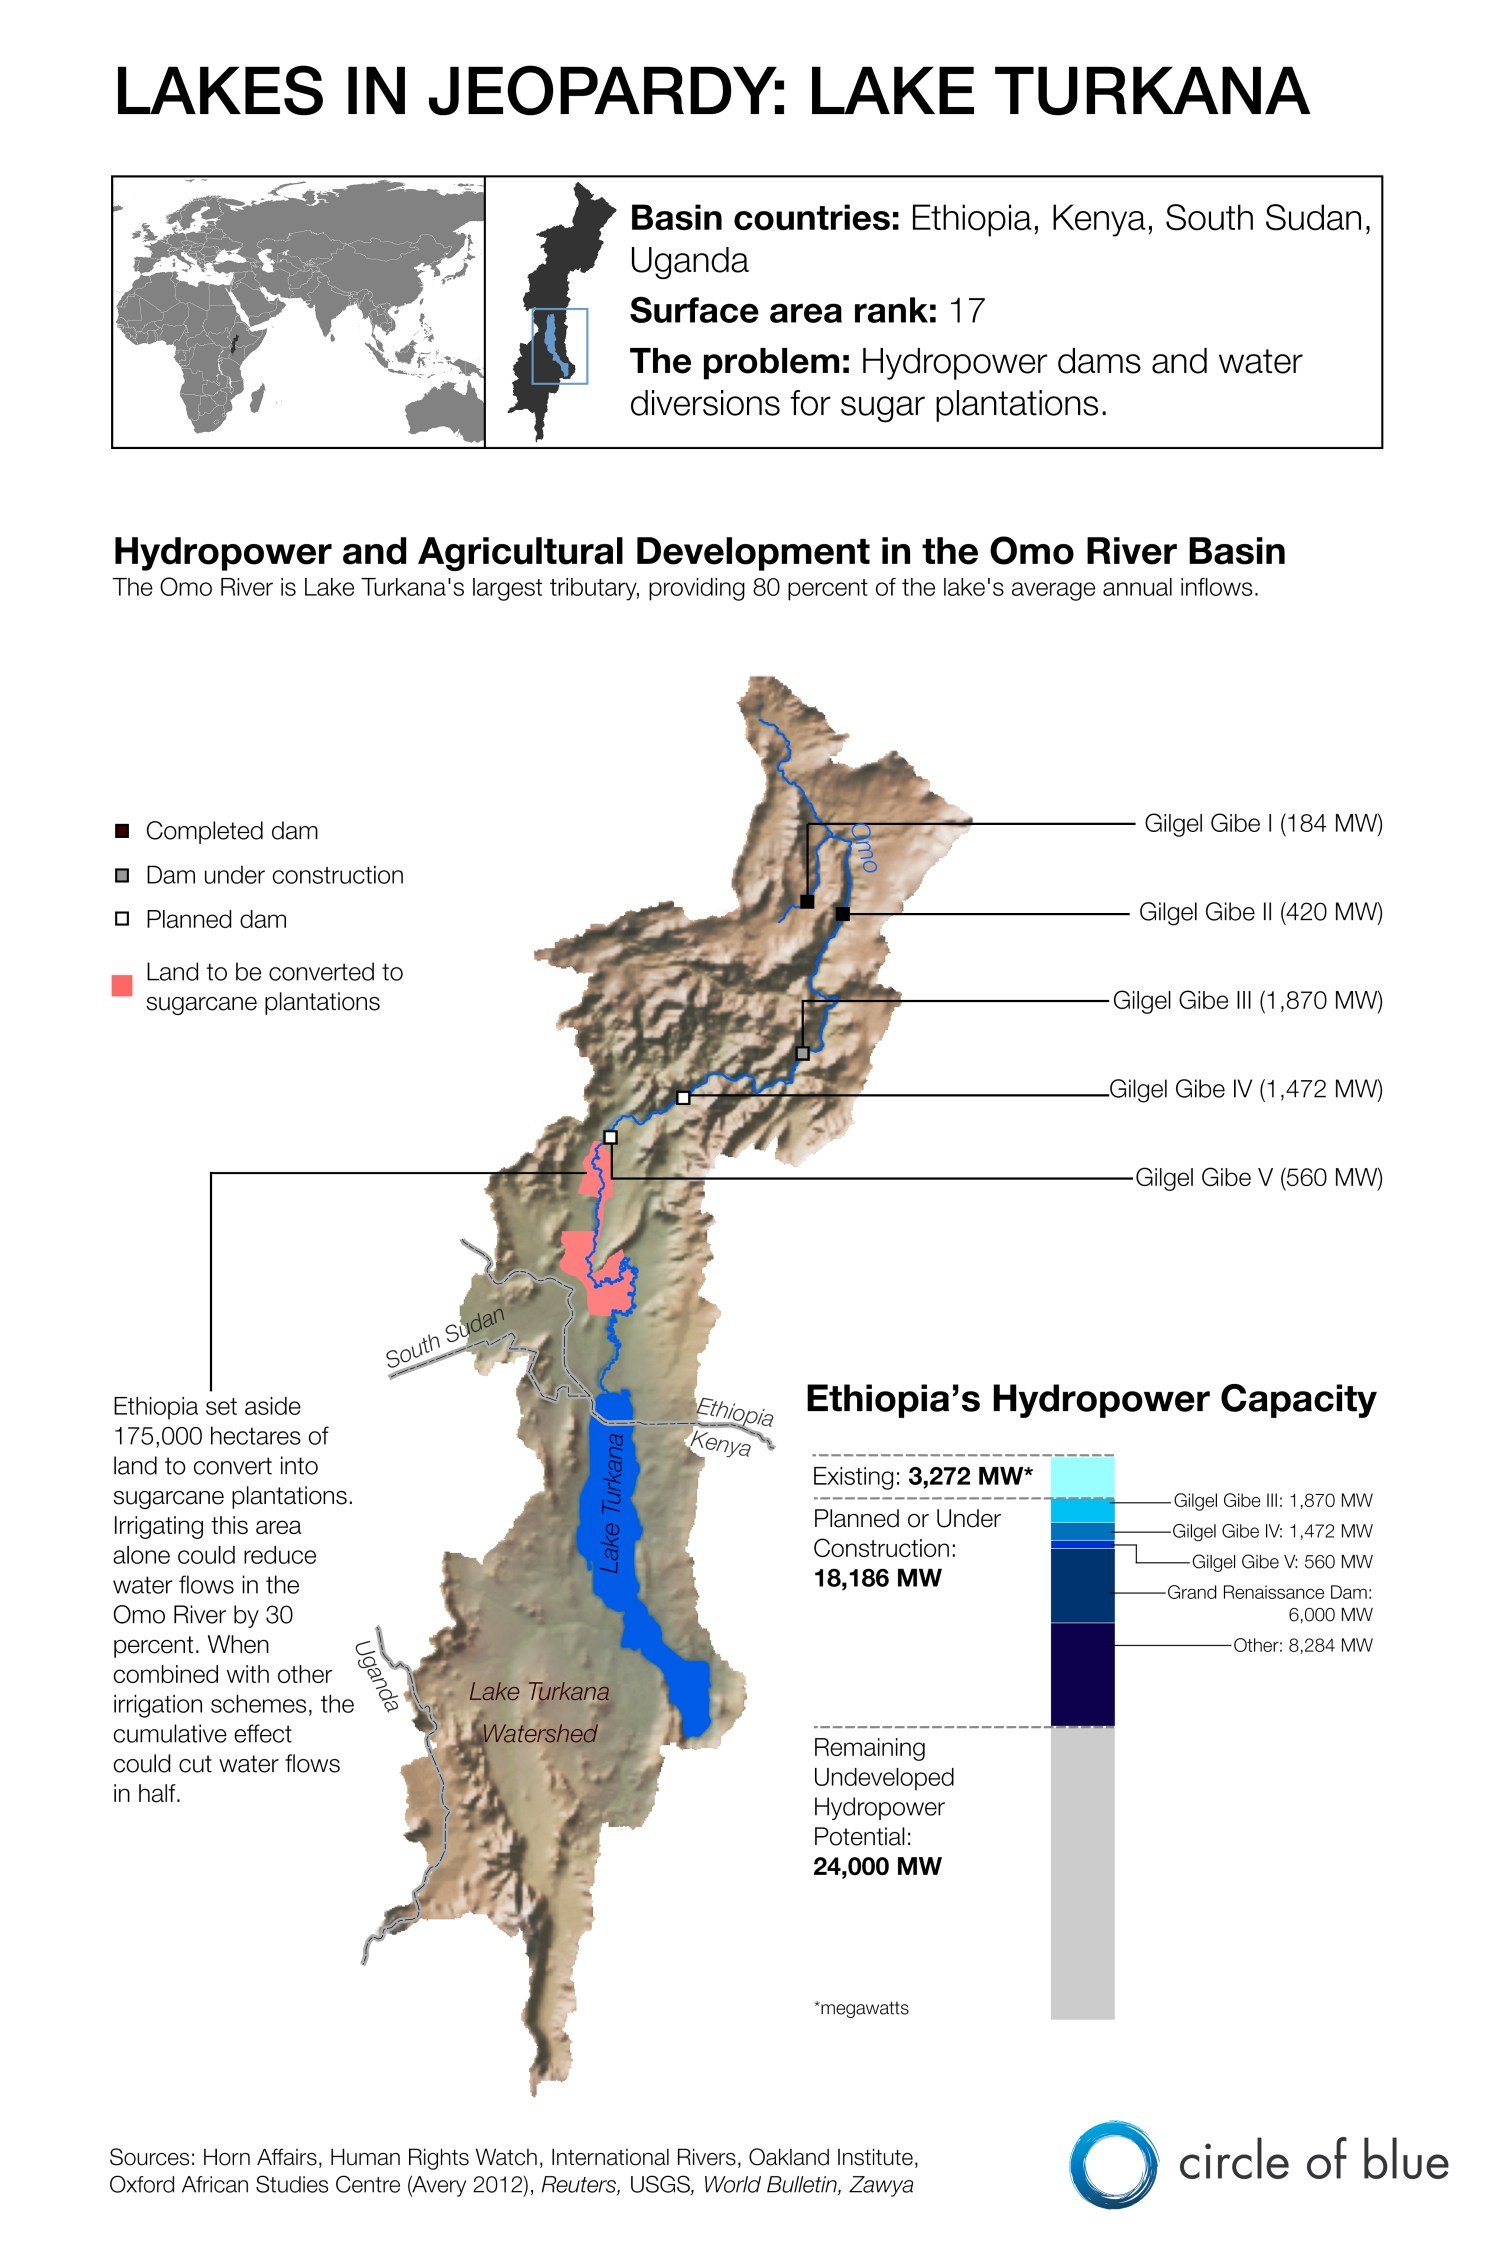 Infographic Graphic Map Lake Turkana Africa Lakes In Jeopardy water Omo River Ethiopia Kenya South Sudan Uganda hydropower irrigation sugar plantation Kaye LaFond Circle of Blue